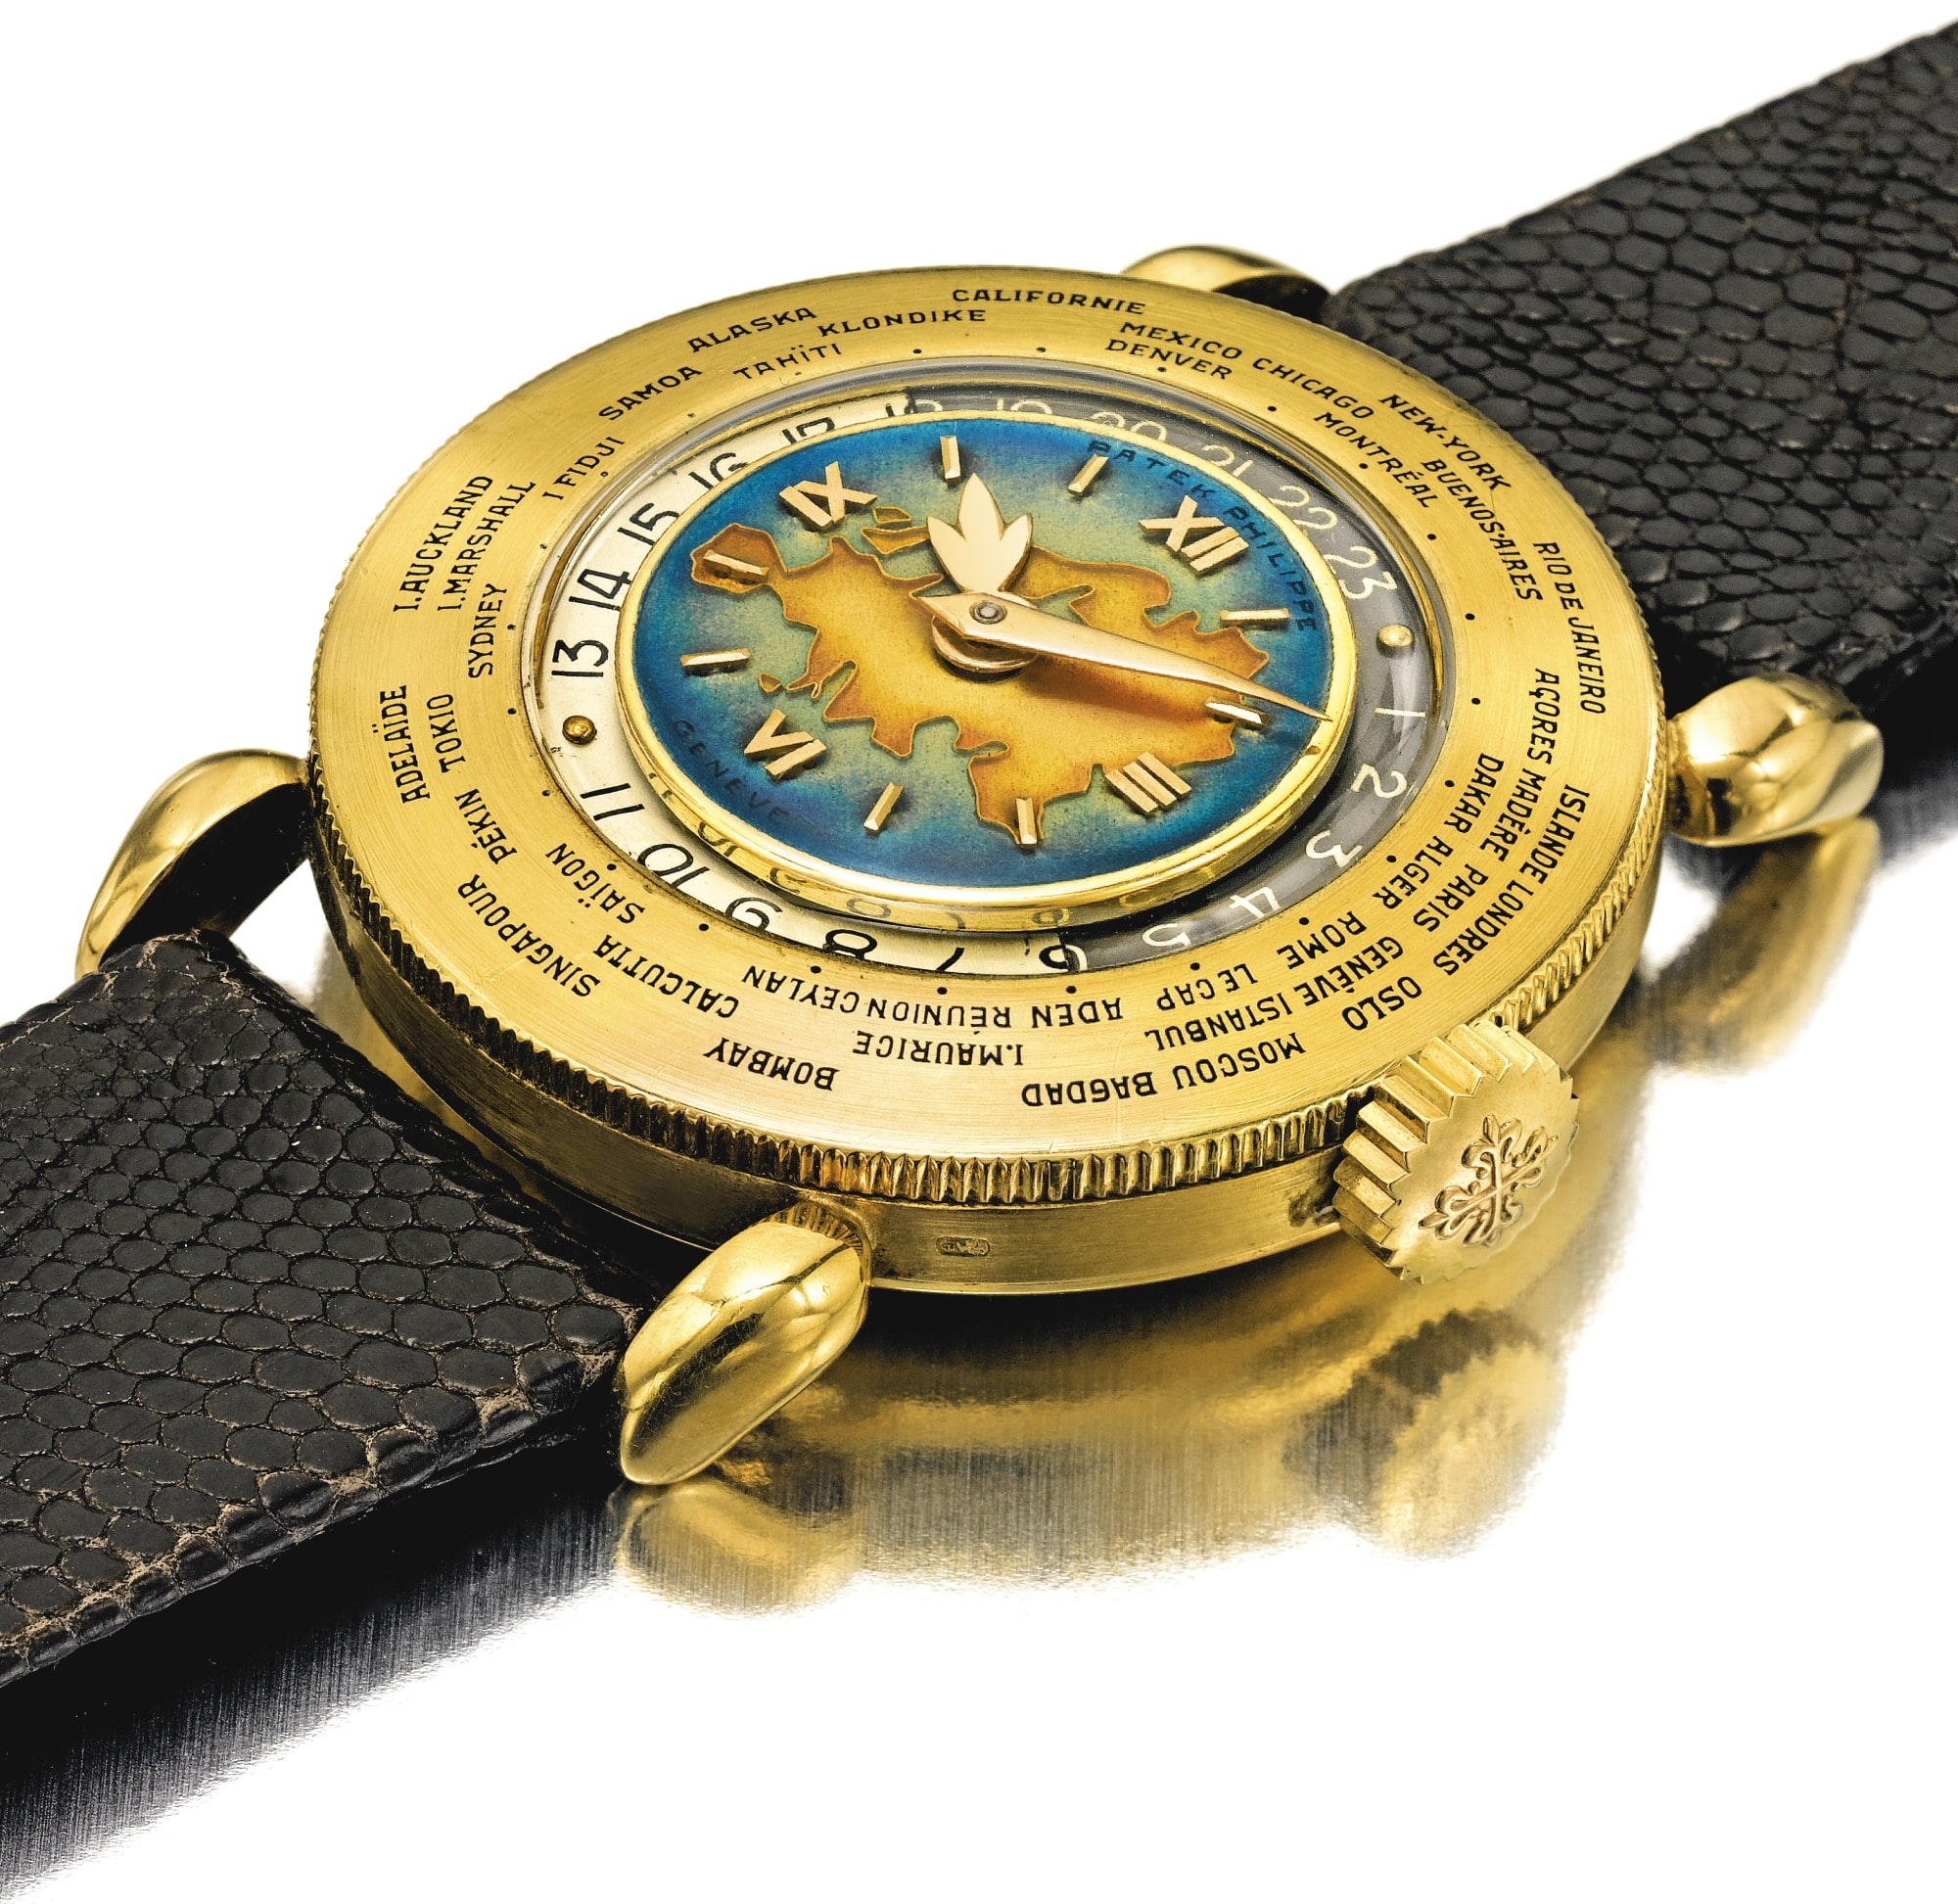 A Patek Philippe Reference 1415 World Timer With Eurasia Enamel Dial, One Of Only Two Known, Coming Up At Sotheby's A Patek Philippe Reference 1415 World Timer With Eurasia Enamel Dial, One Of Only Two Known, Coming Up At Sotheby's 008N09521 8WW5B